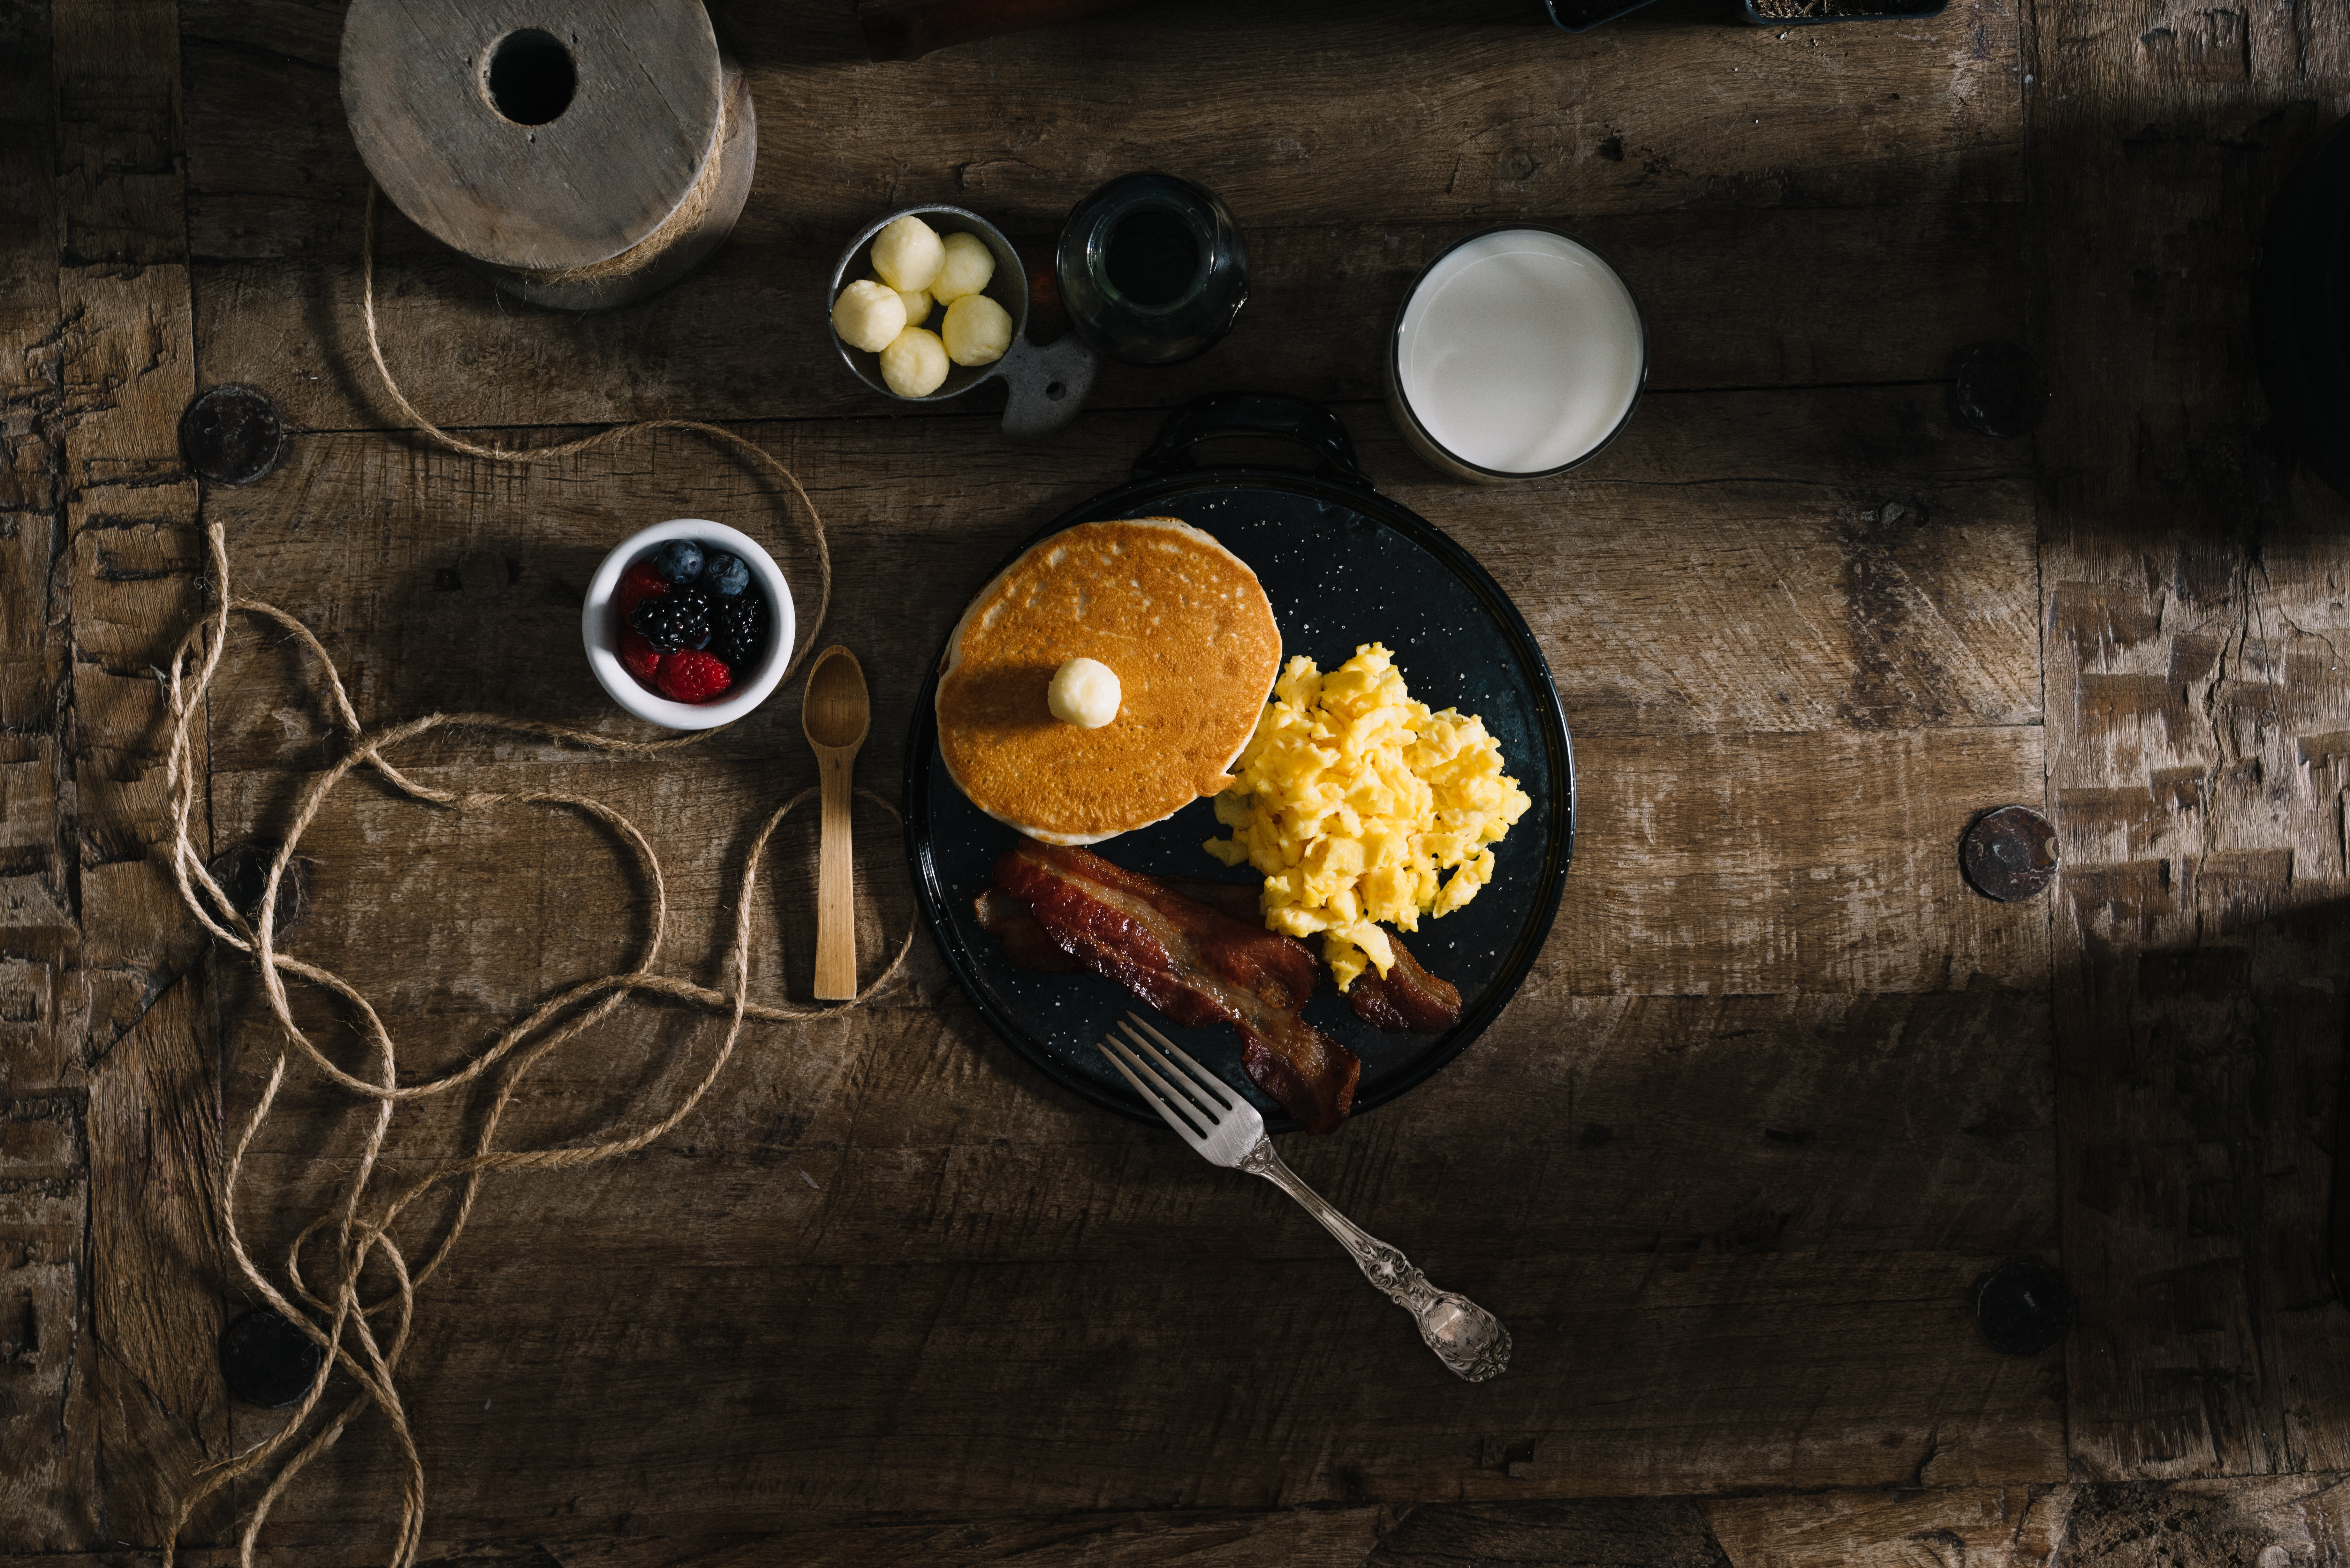 Rustic breakfast tablescape with pancakes, eggs, and bacon